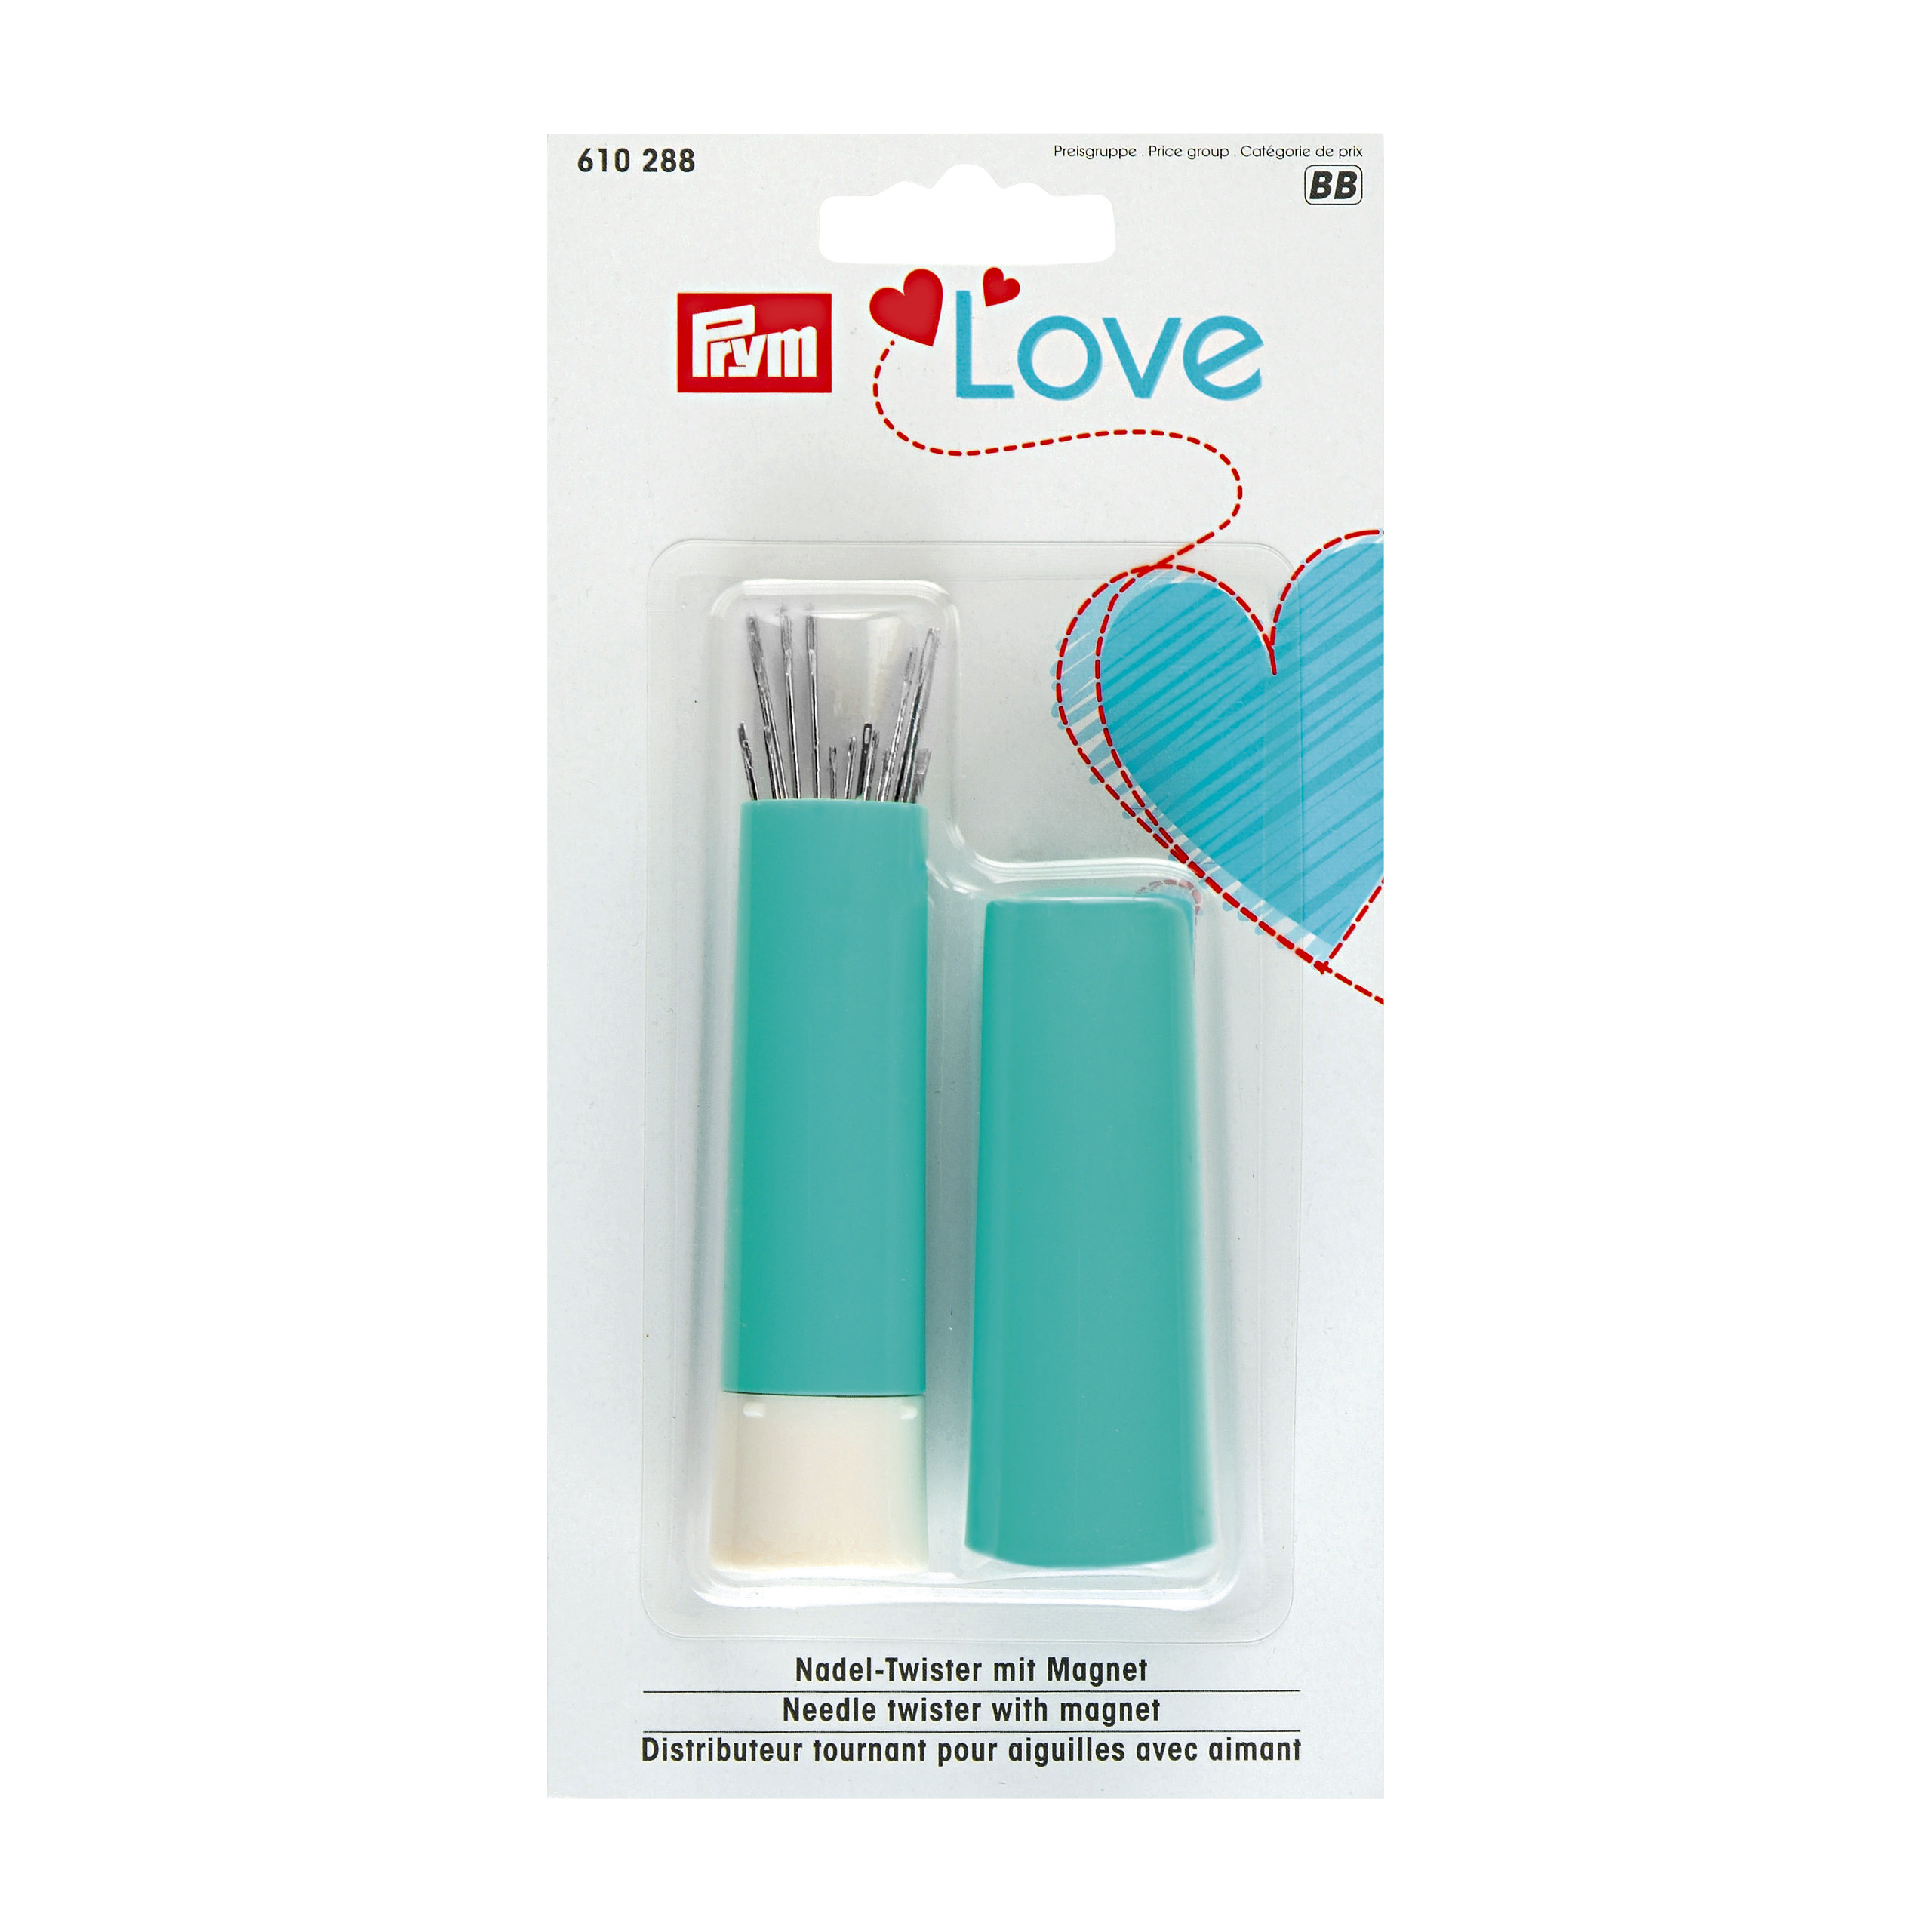 Prym Needle Twister, Prym Love, with sewing and darning needles